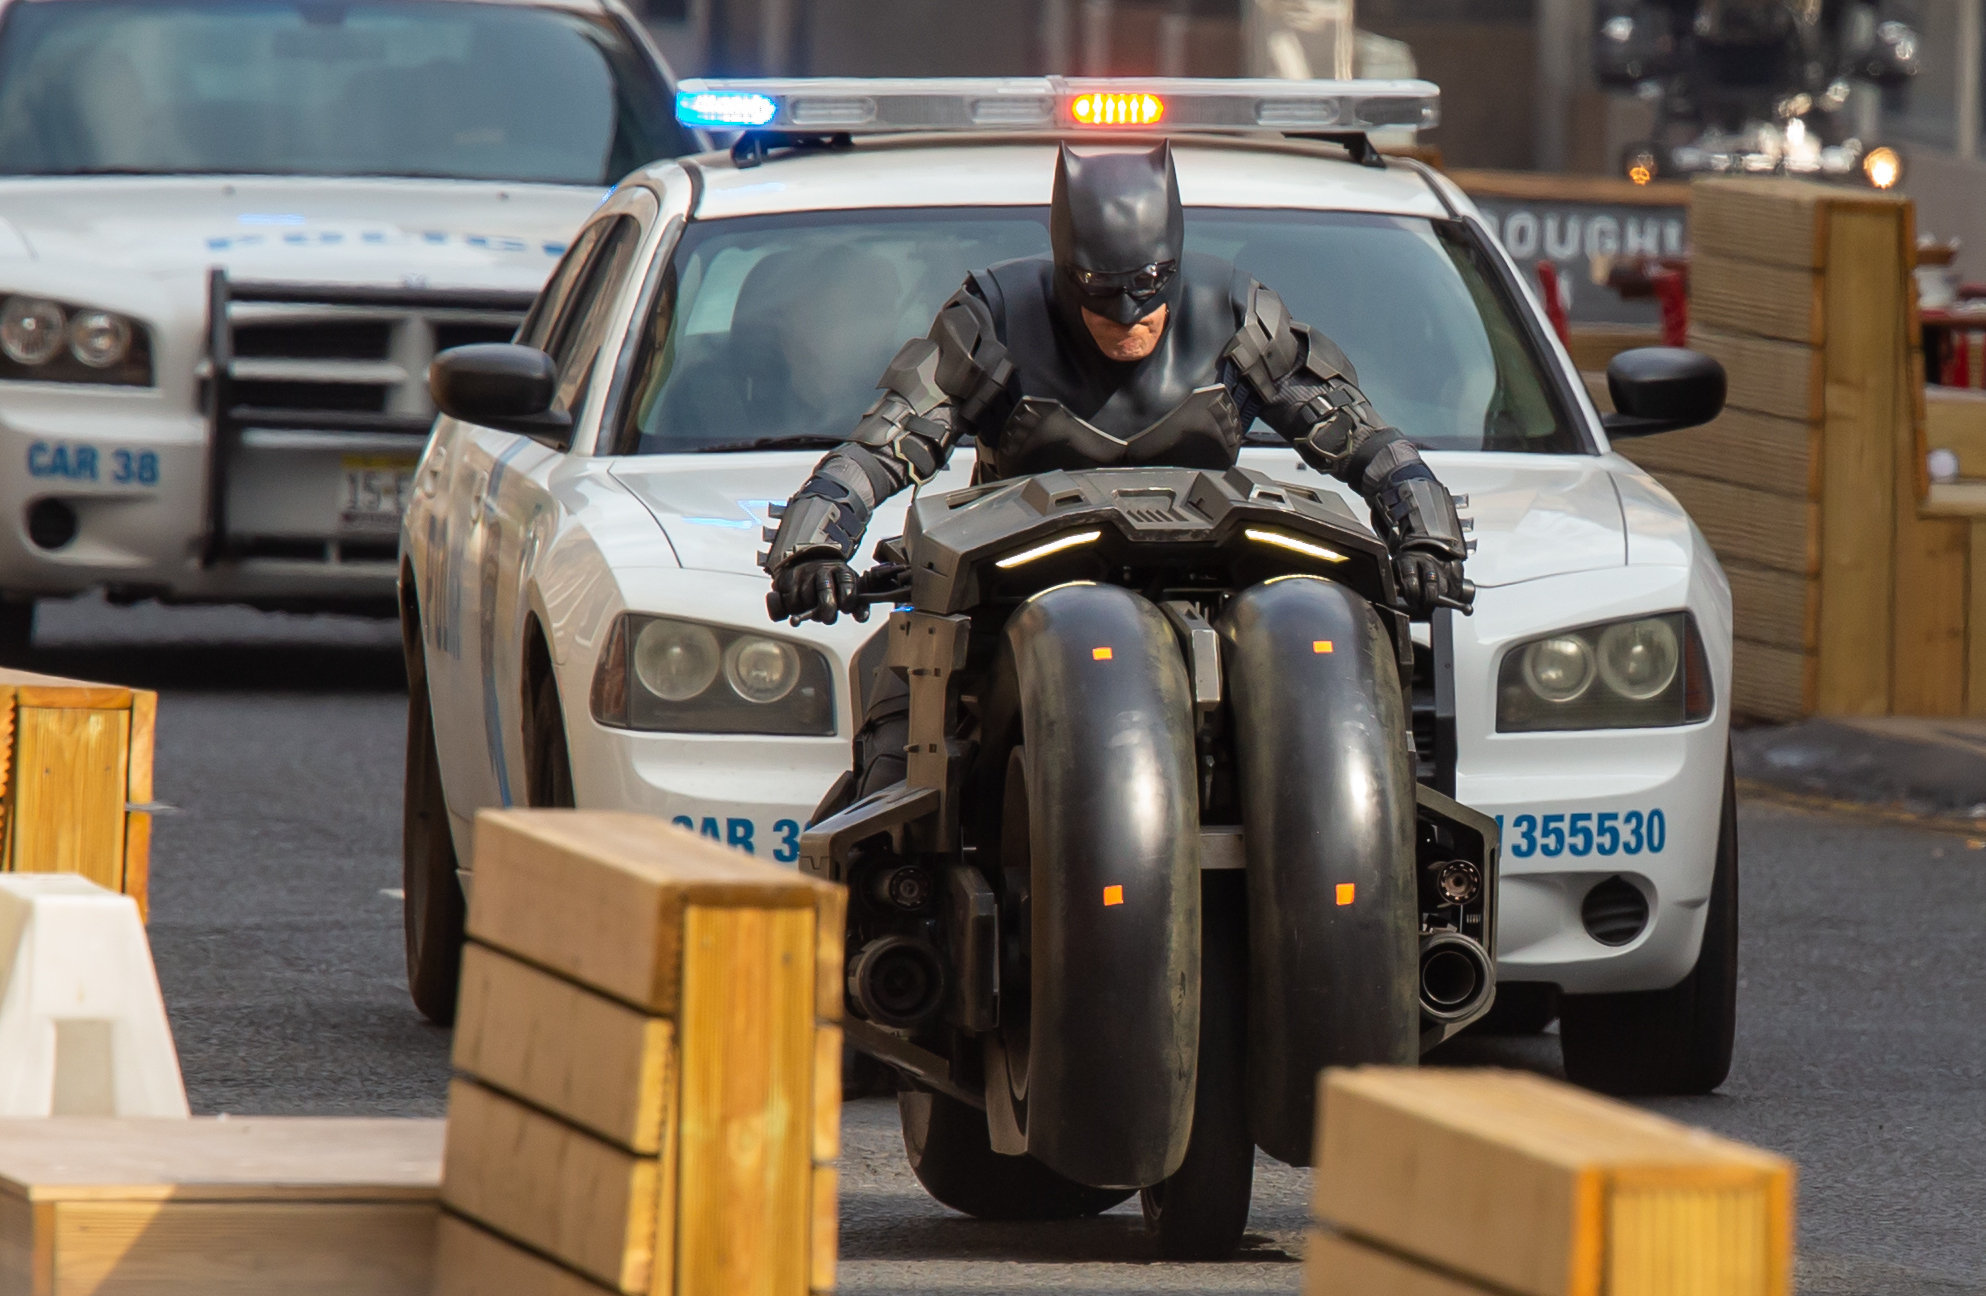 Warner Bros wants to film entire movie in Glasgow, a first for city